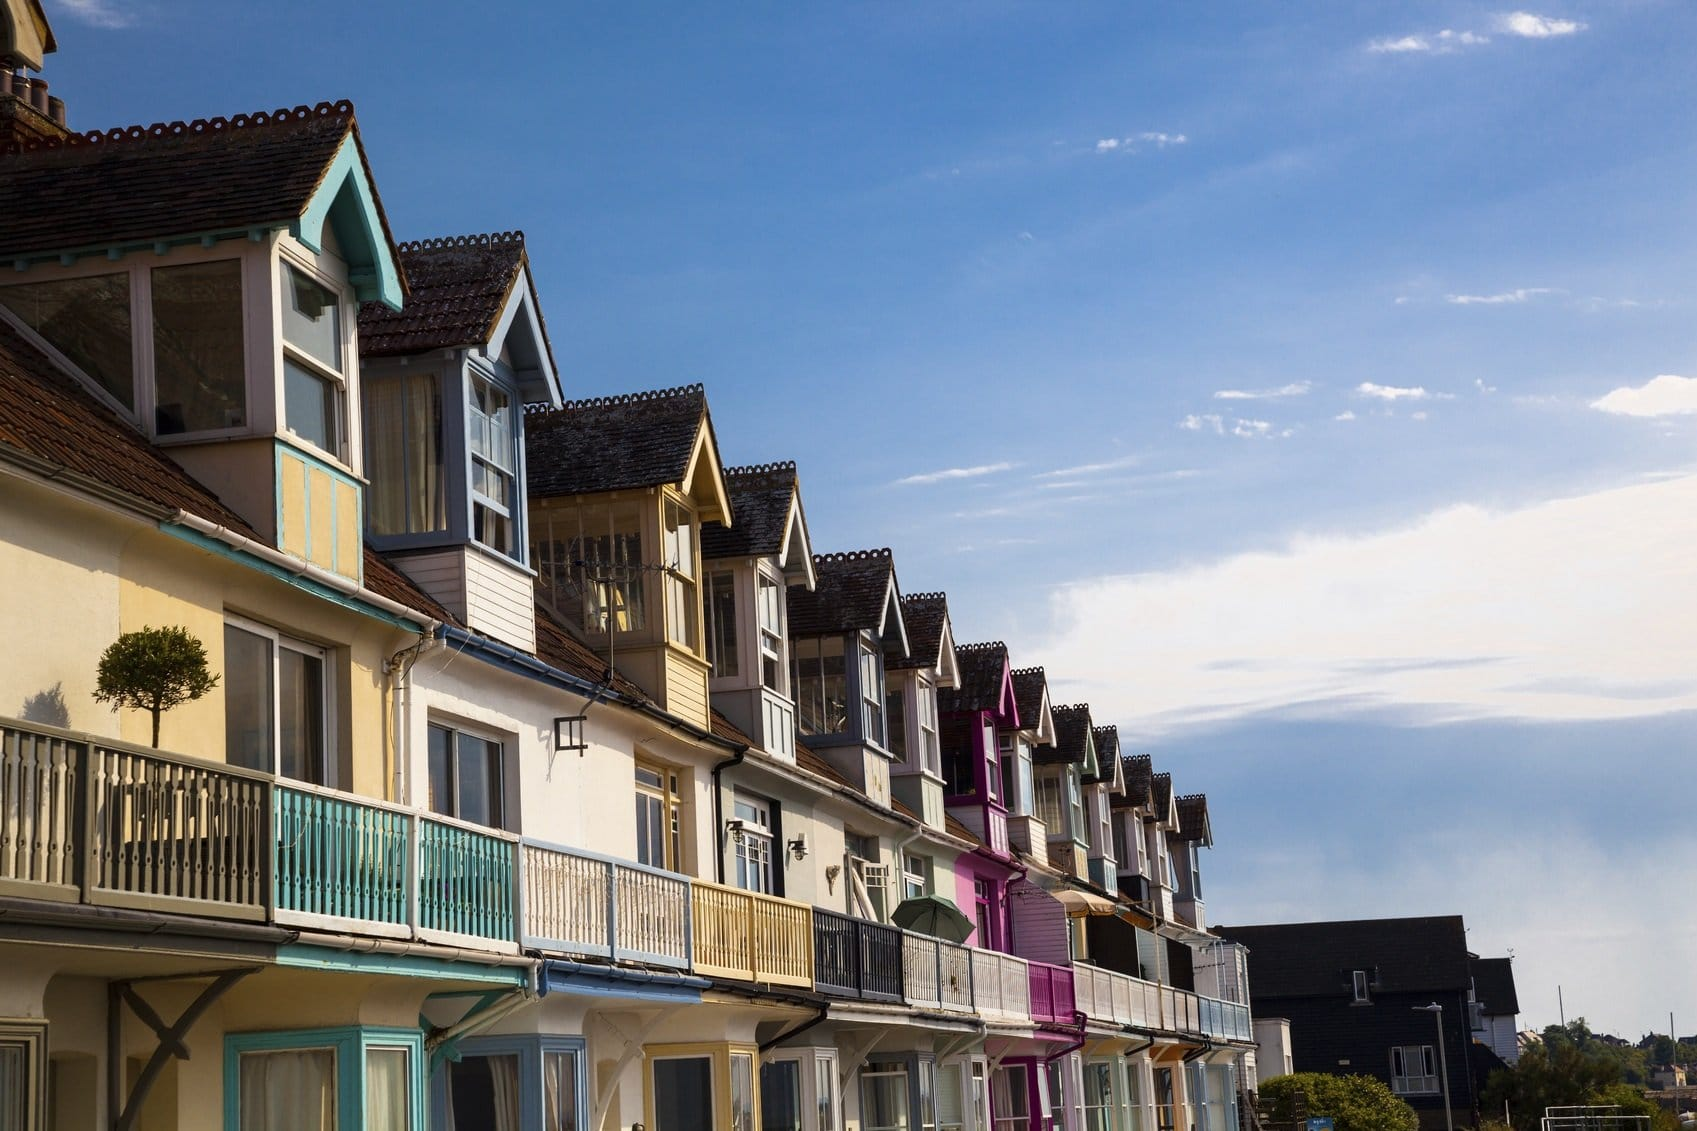 colourful holiday seaside apartments in summer sun england